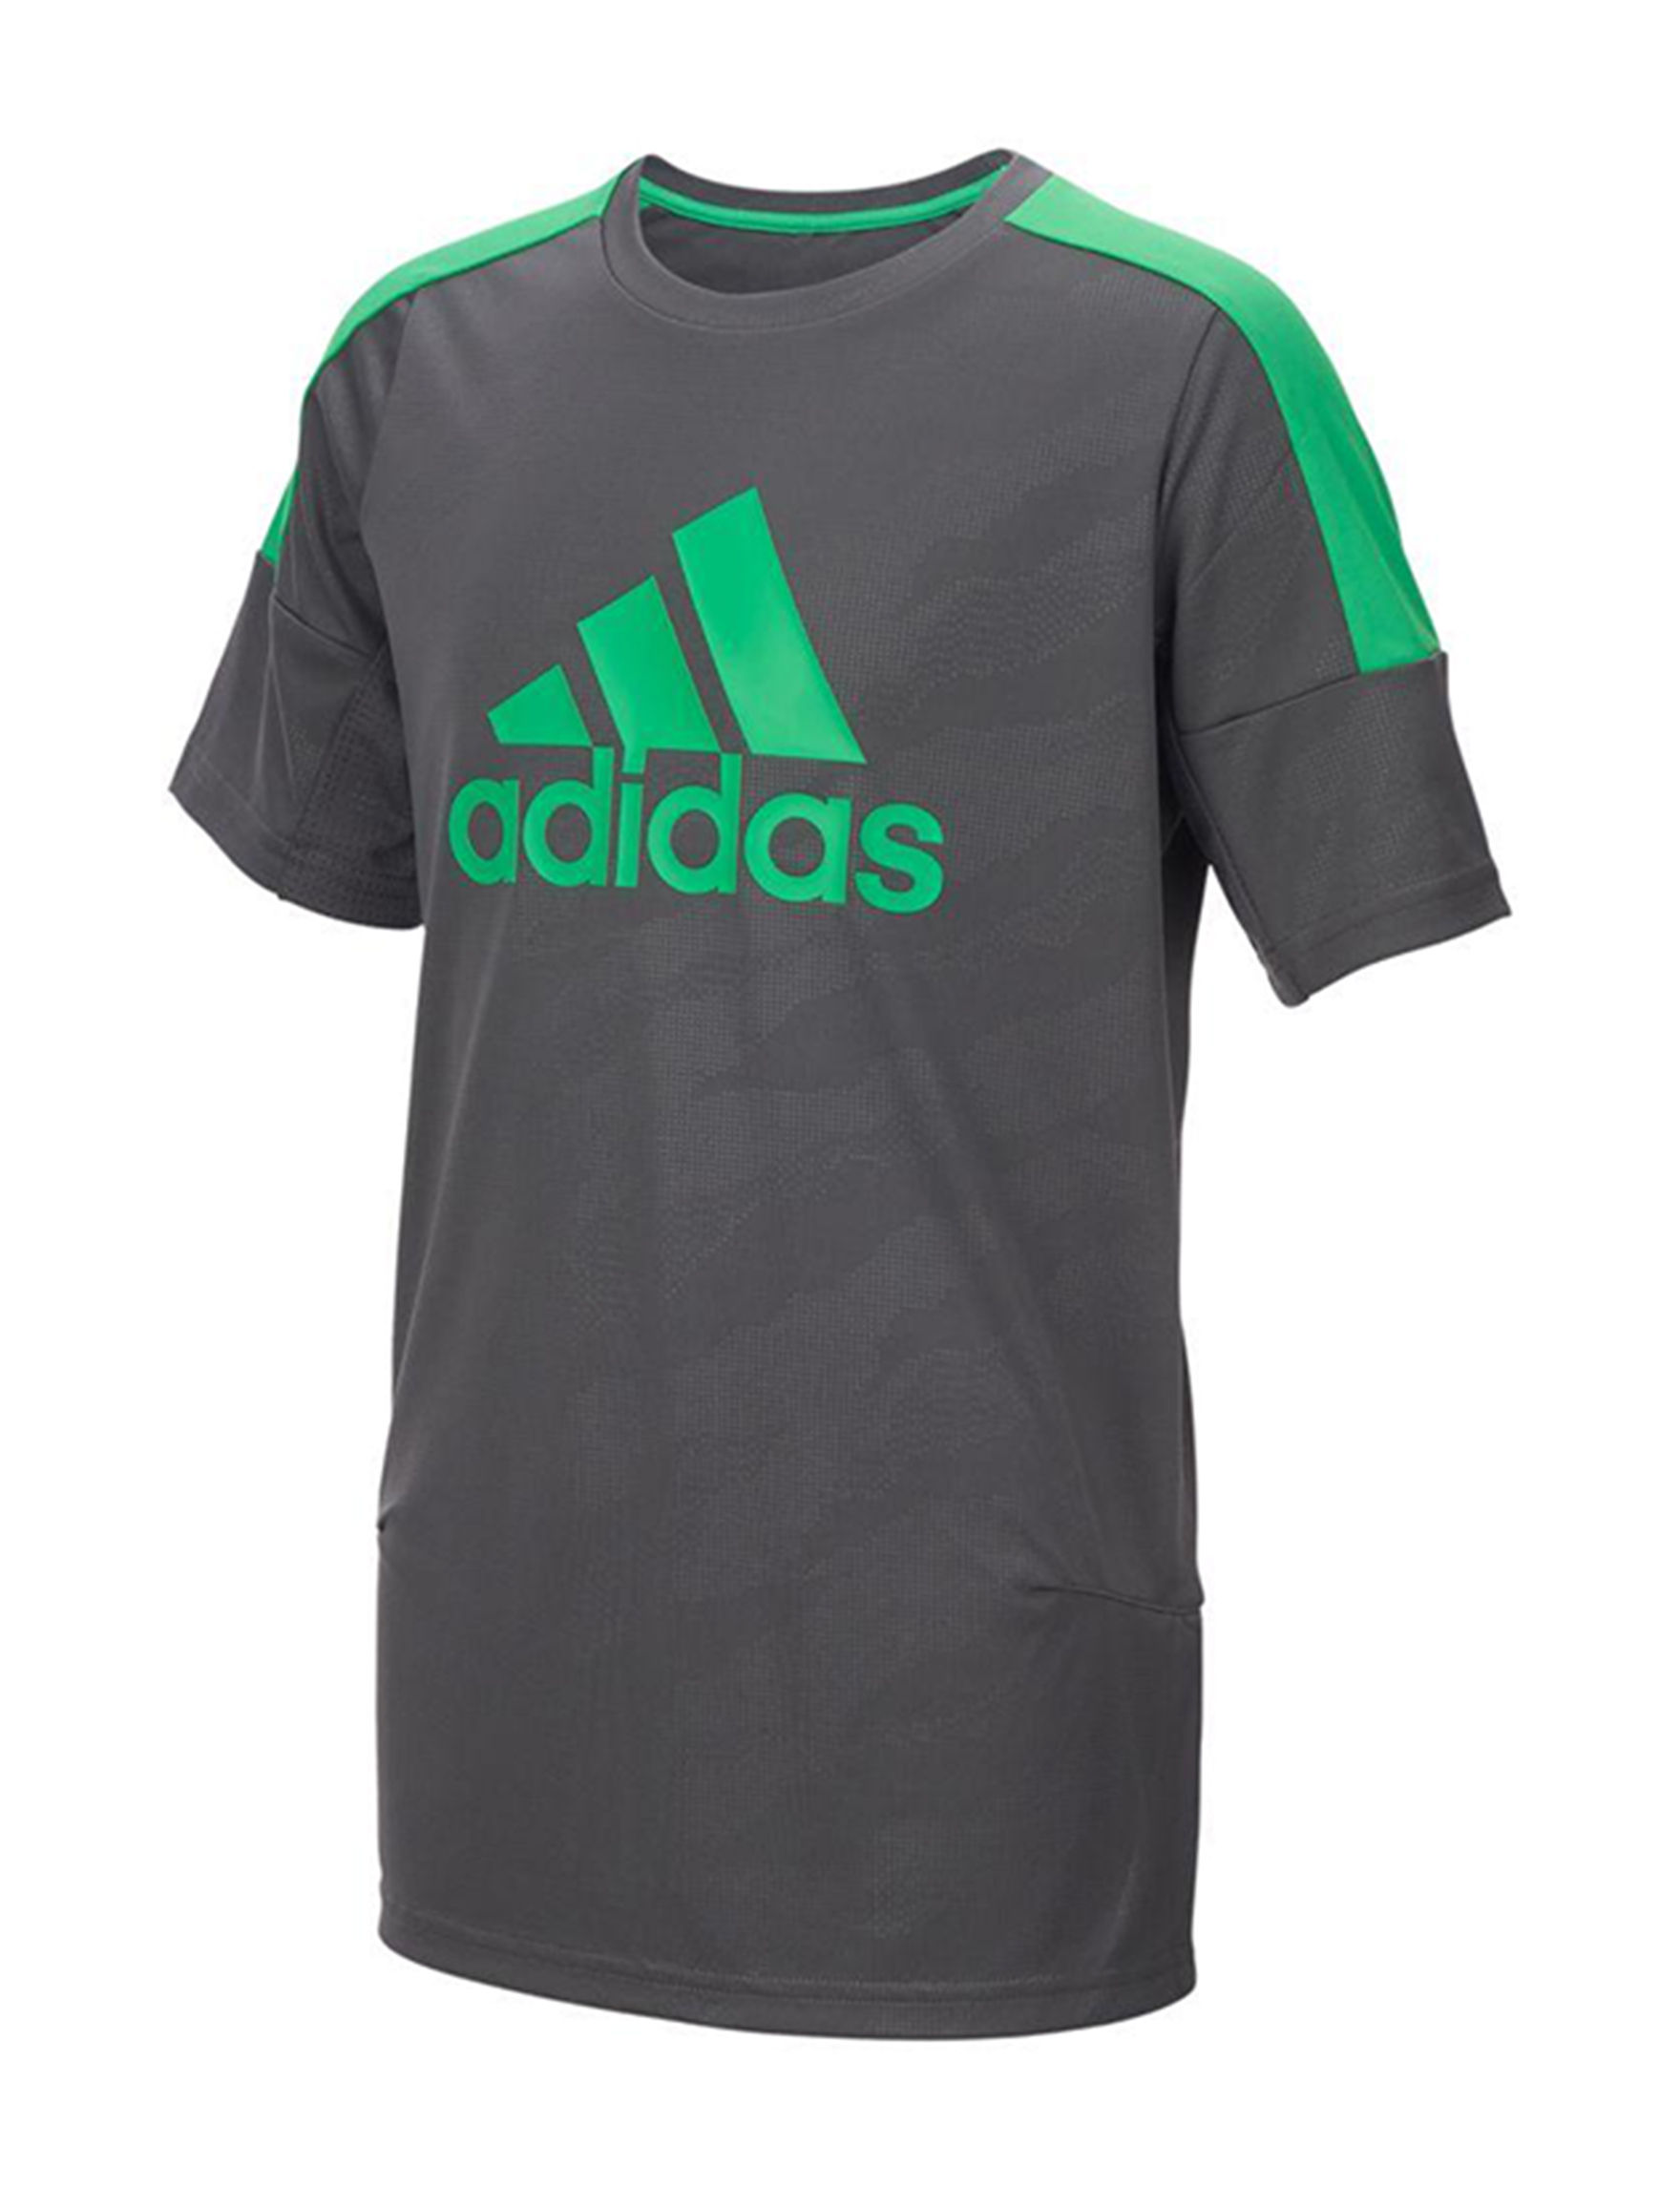 Adidas Dark Grey Tees & Tanks